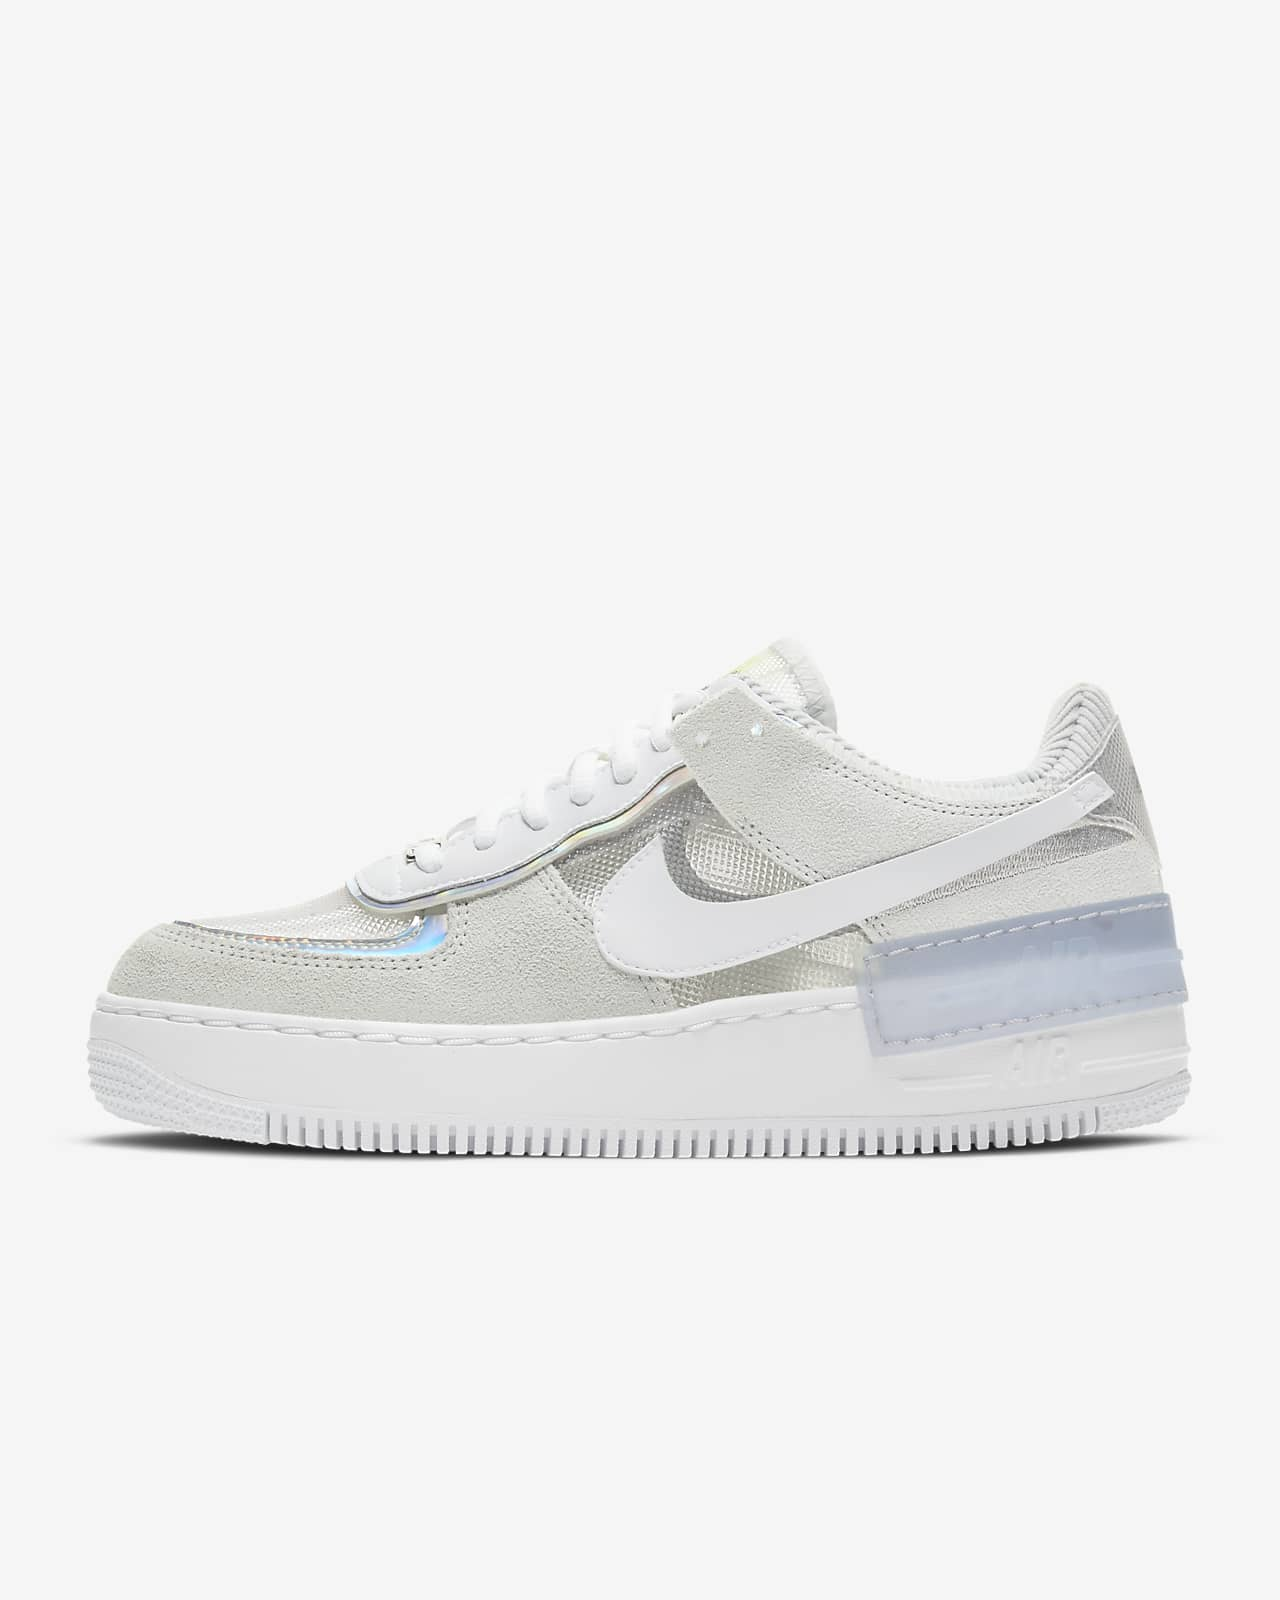 Nike Air Force 1 Shadow Se Women S Shoe Nike Id Nike air force 1 (39). nike air force 1 shadow se women s shoe